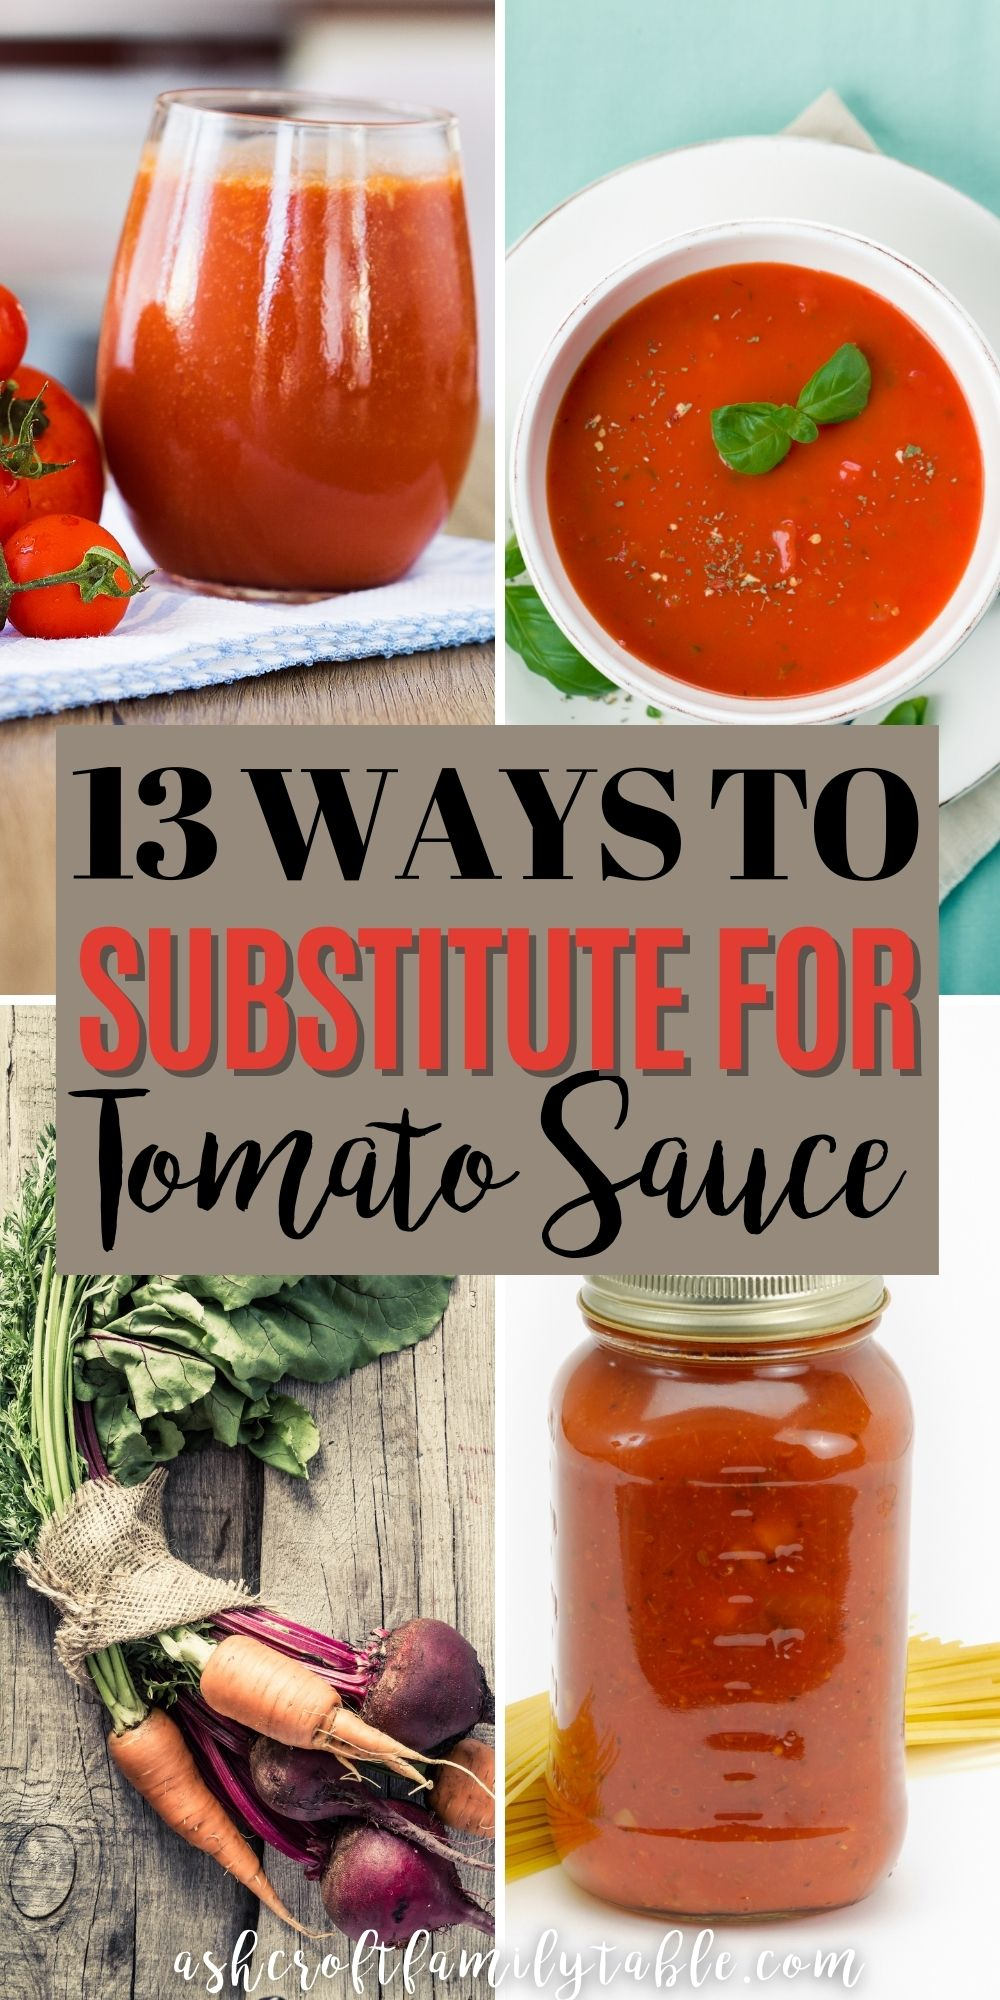 Pinterest graphic with text and collage of ingredients used to substitute for tomato sauce.